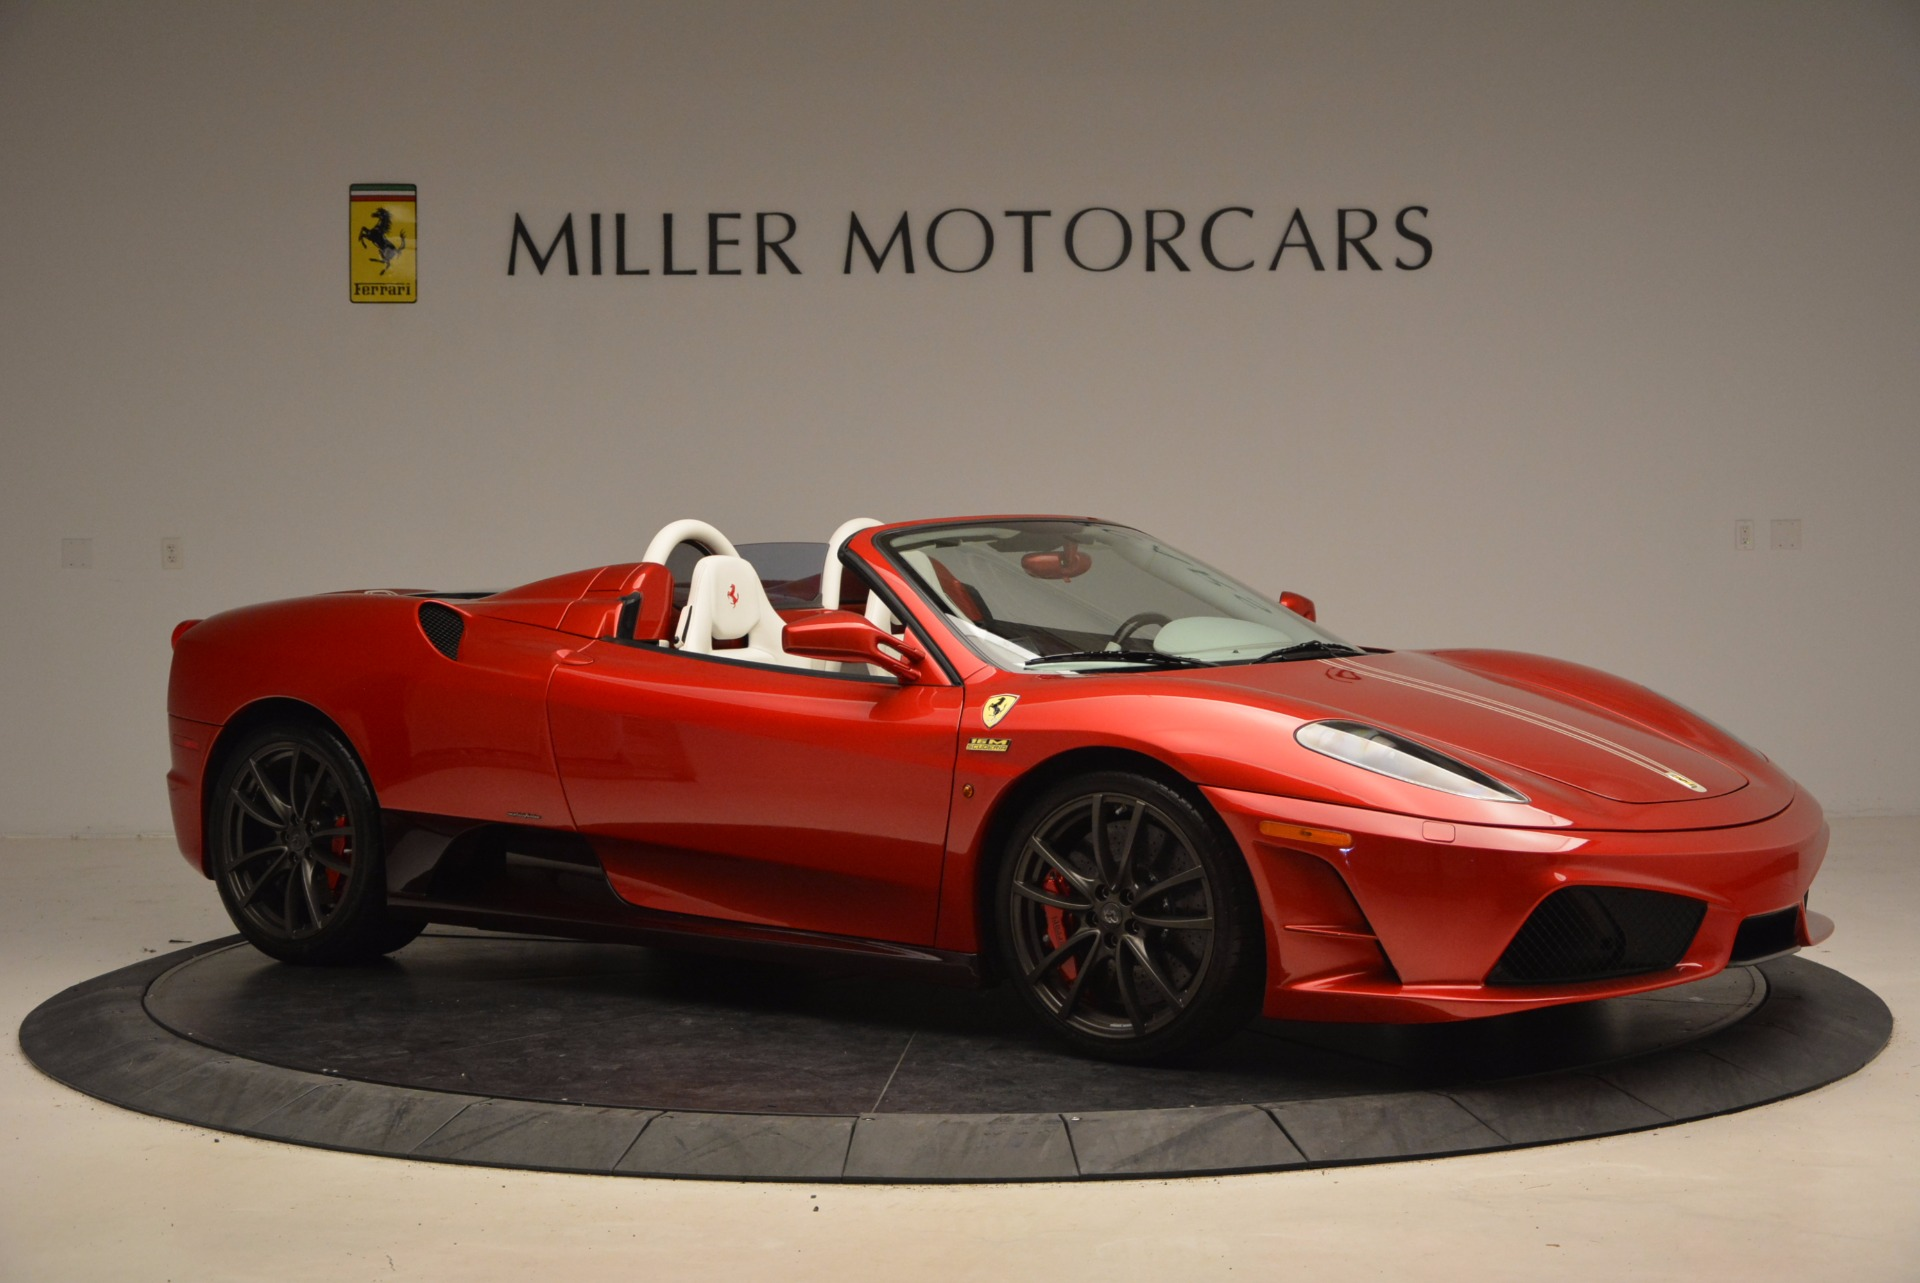 Used 2009 Ferrari F430 Scuderia 16M For Sale In Westport, CT 1398_p10